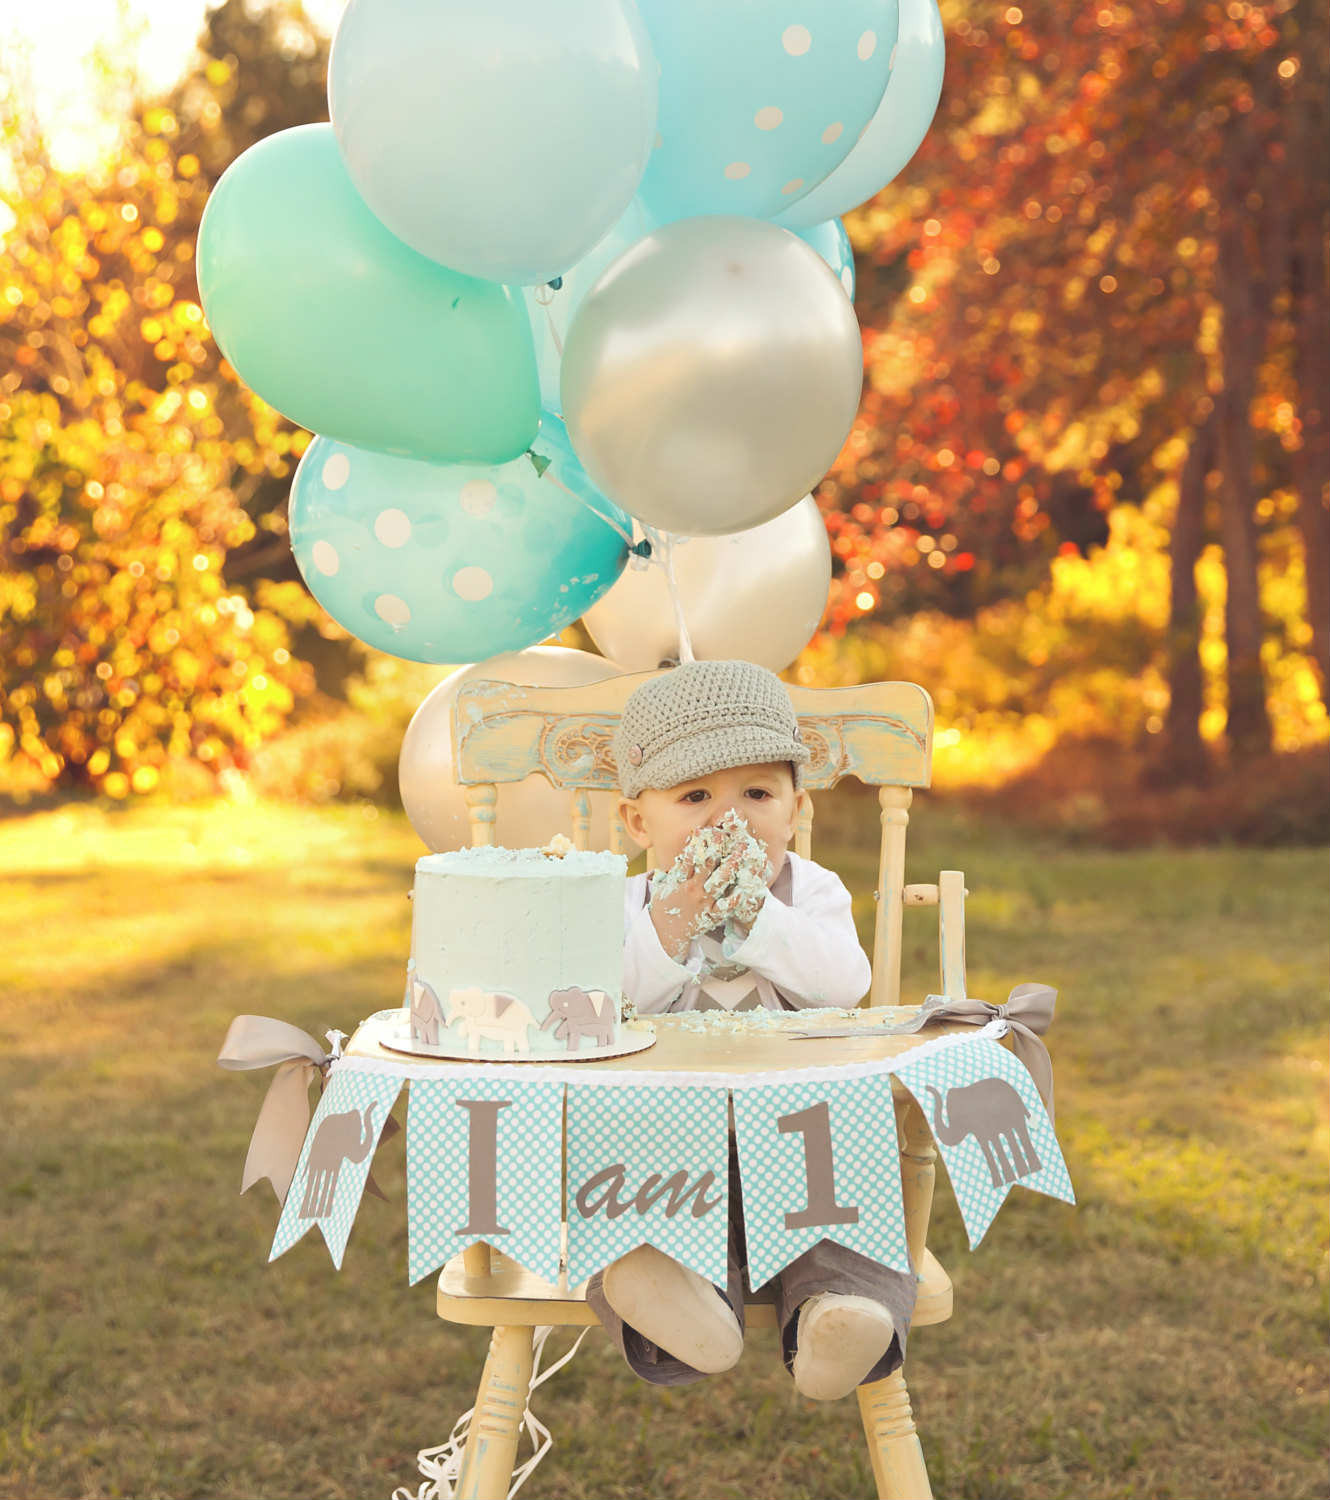 Best ideas about 1st Birthday Ideas For Boys . Save or Pin First Birthday The time to celebrate is here Now.